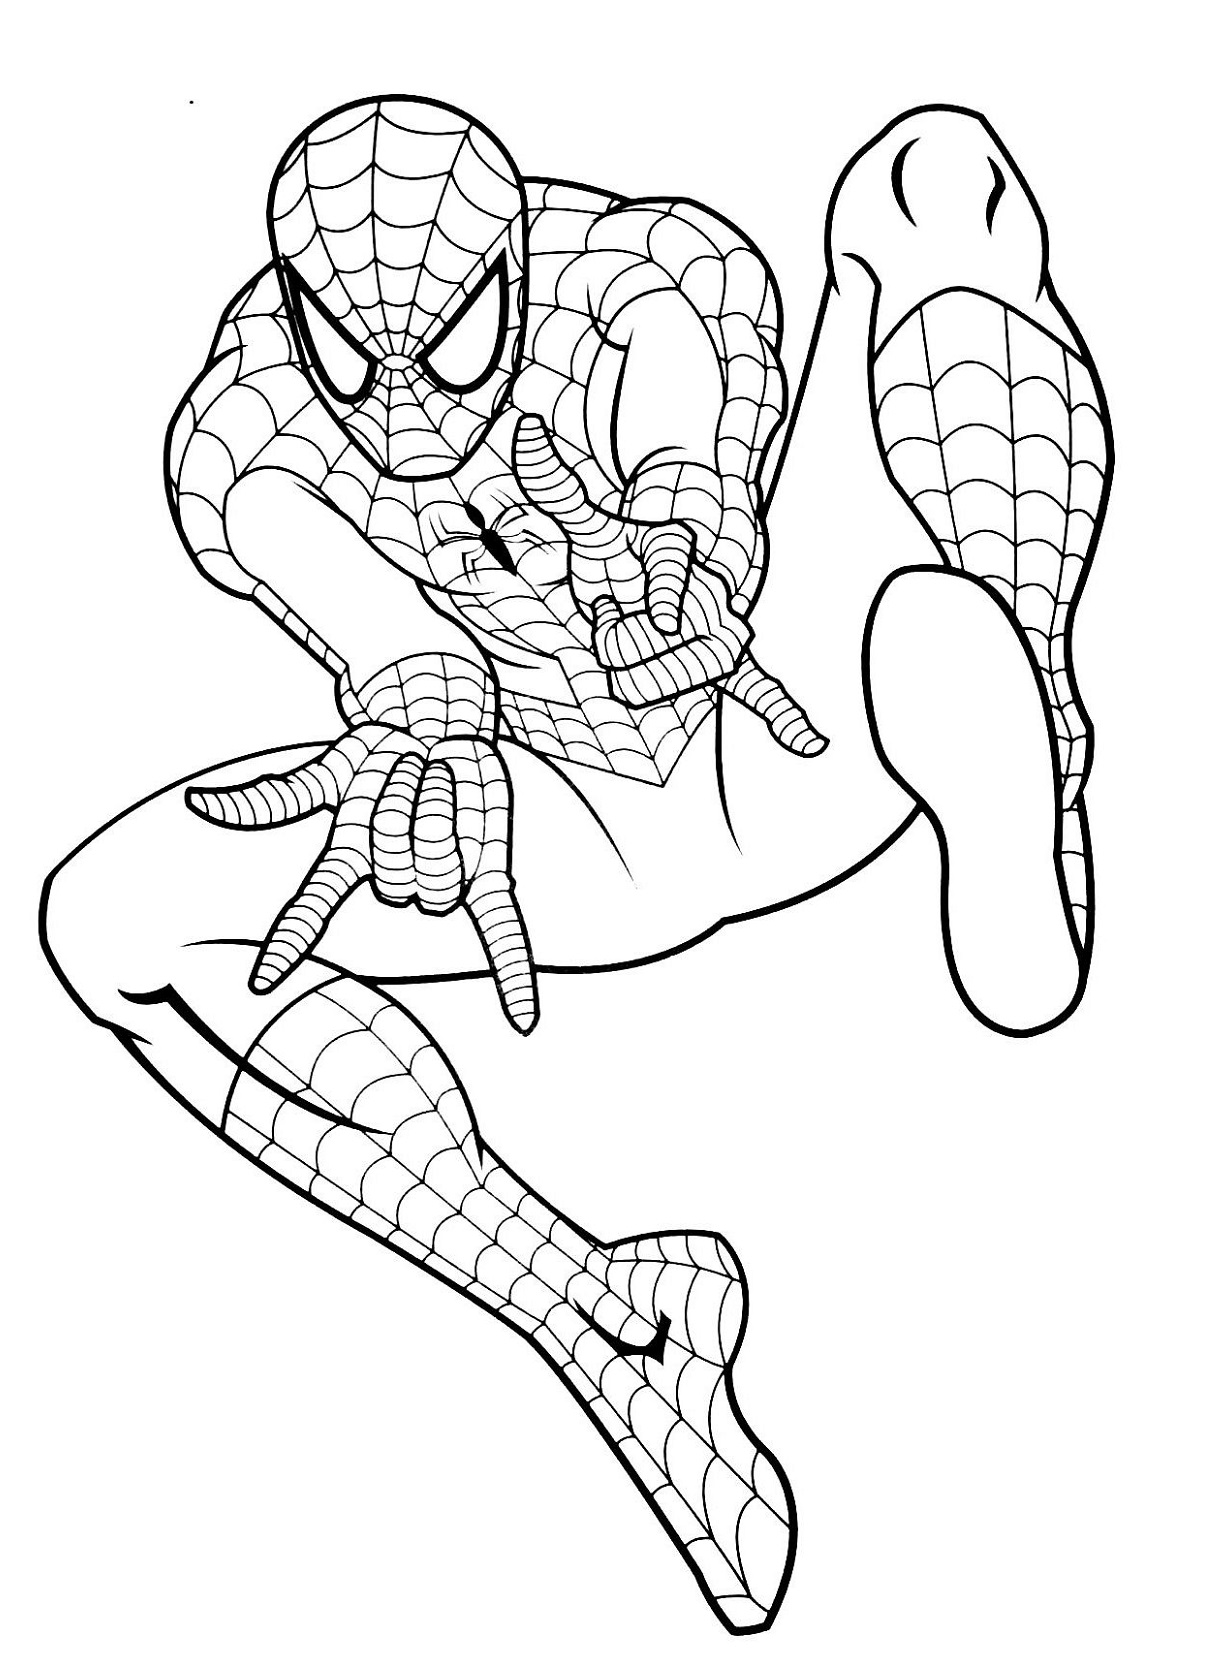 coloring pictures spiderman print download spiderman coloring pages an enjoyable spiderman coloring pictures